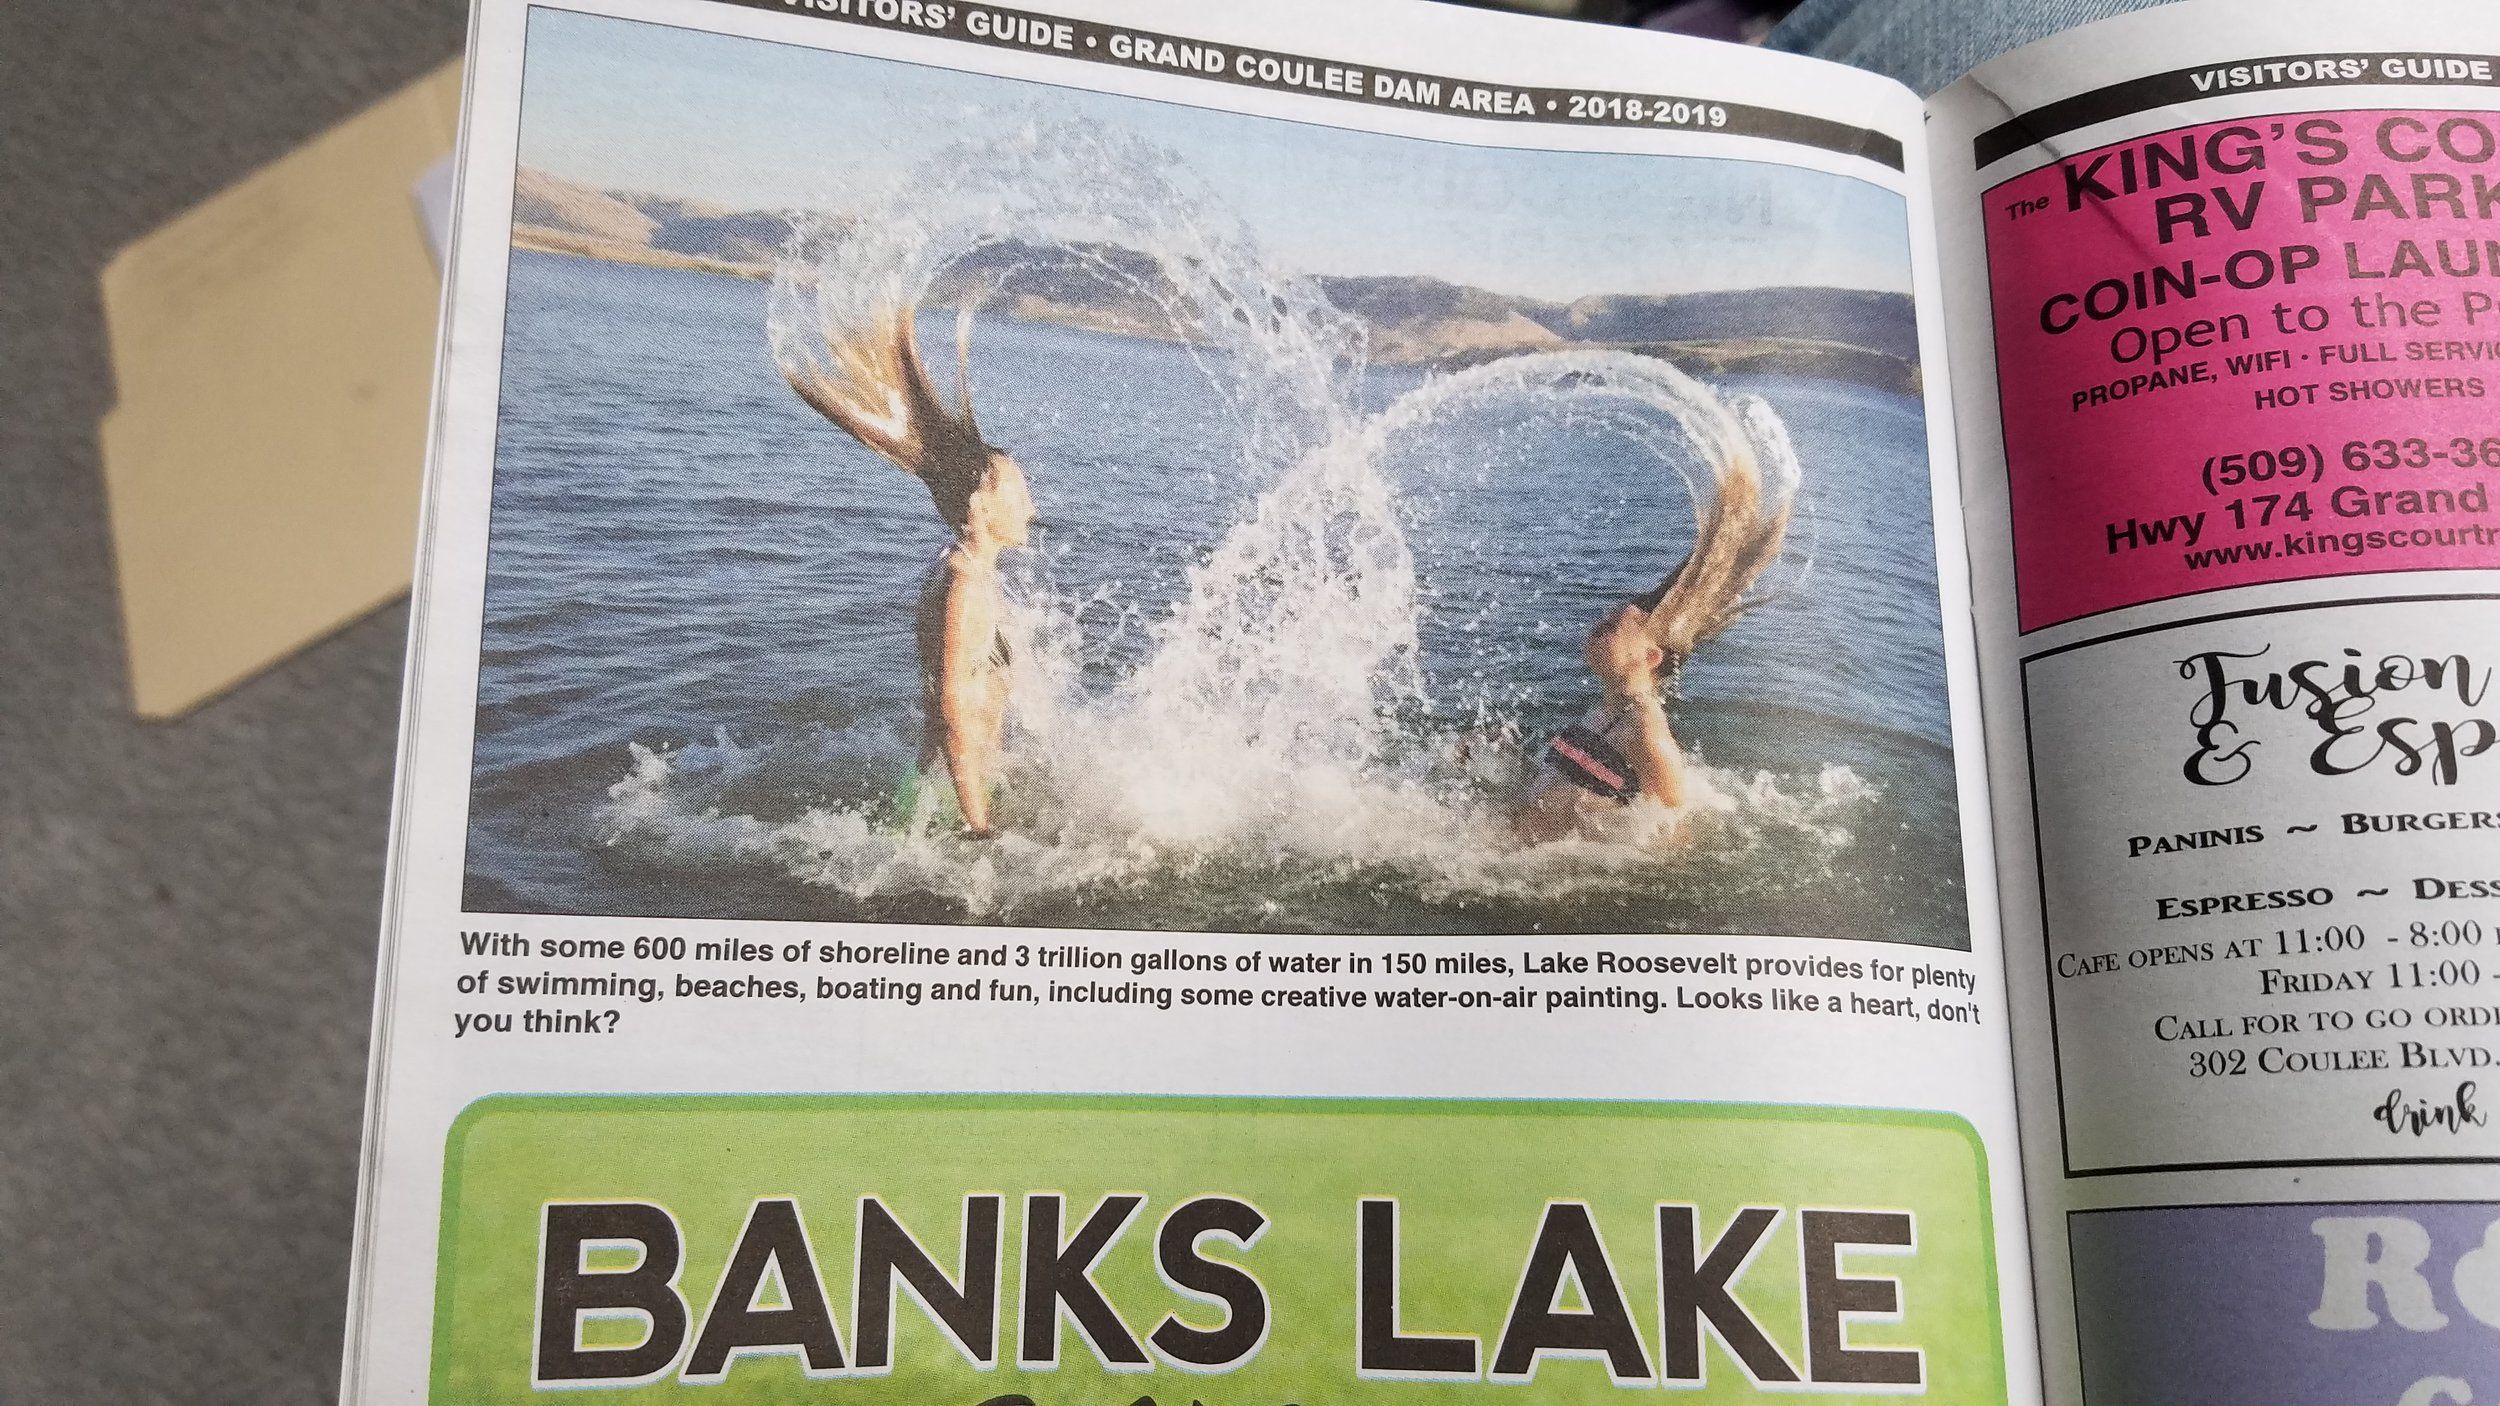 Look how fun water can be in in its liquid state! The lakes around the Grand Coulee Dam in eastern Washington attracts crowds of recreational boaters, fishers, swimmers, and frolickers in summer and fall.